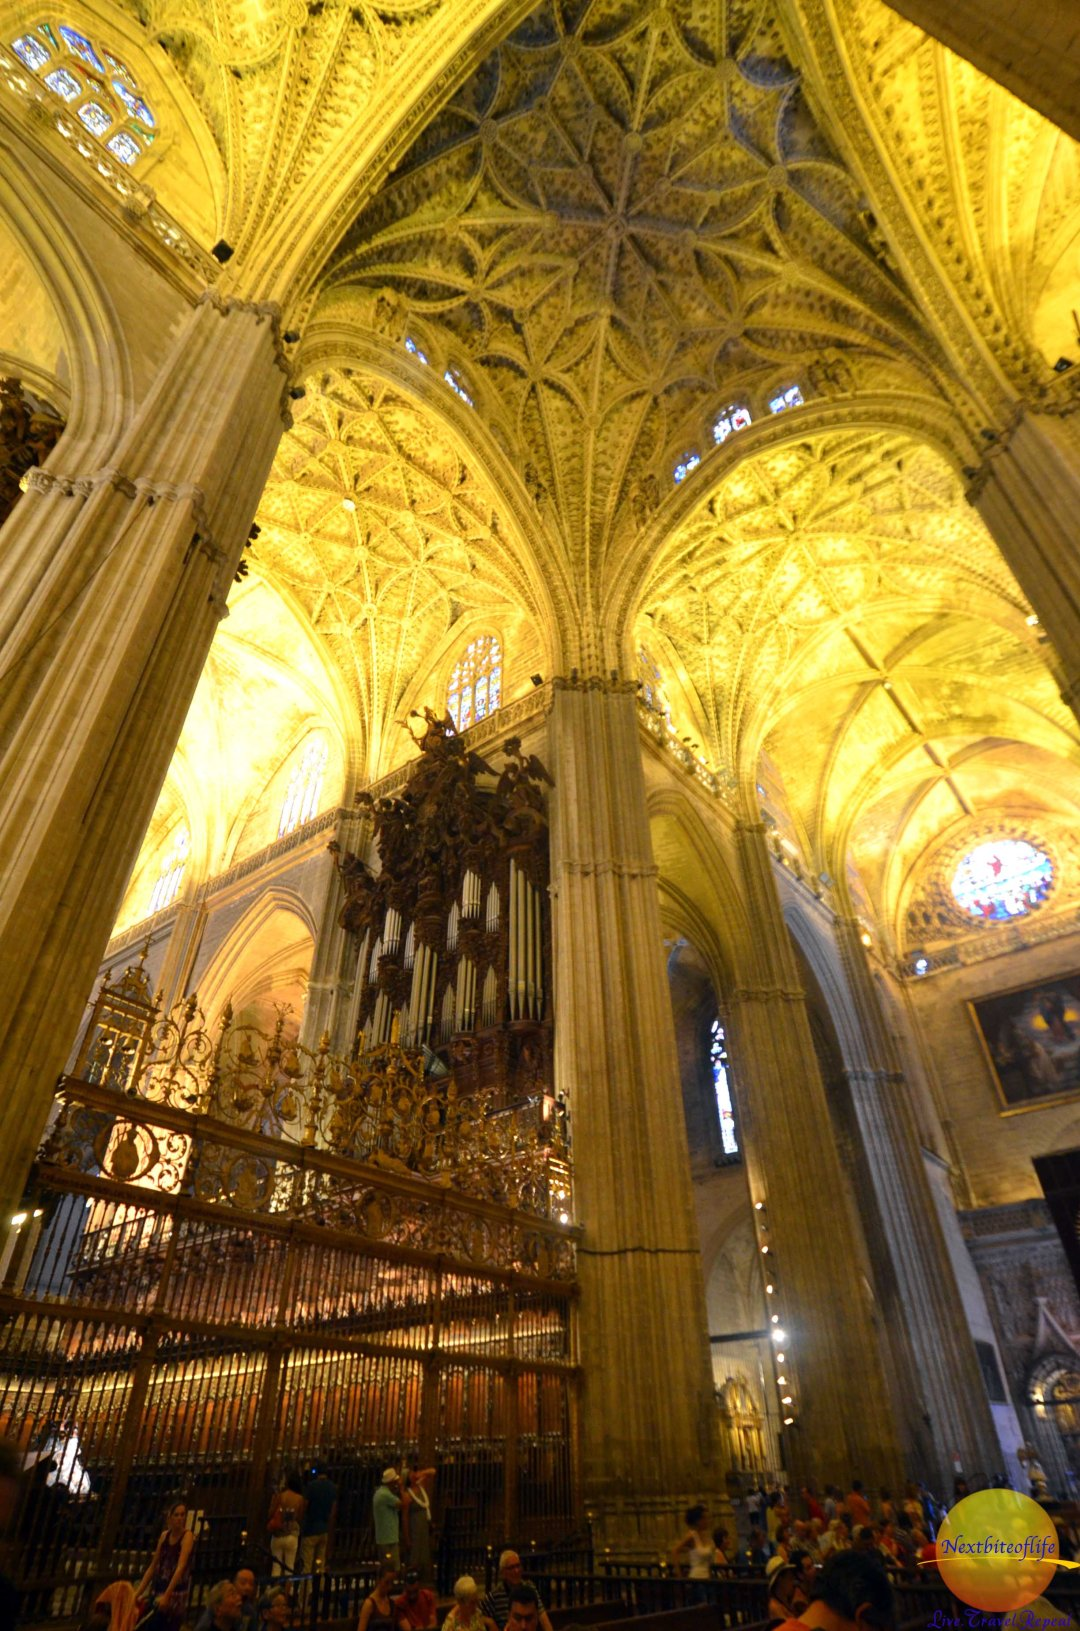 Inside the Seville Cathedral. The altarpiece is behind those gates.